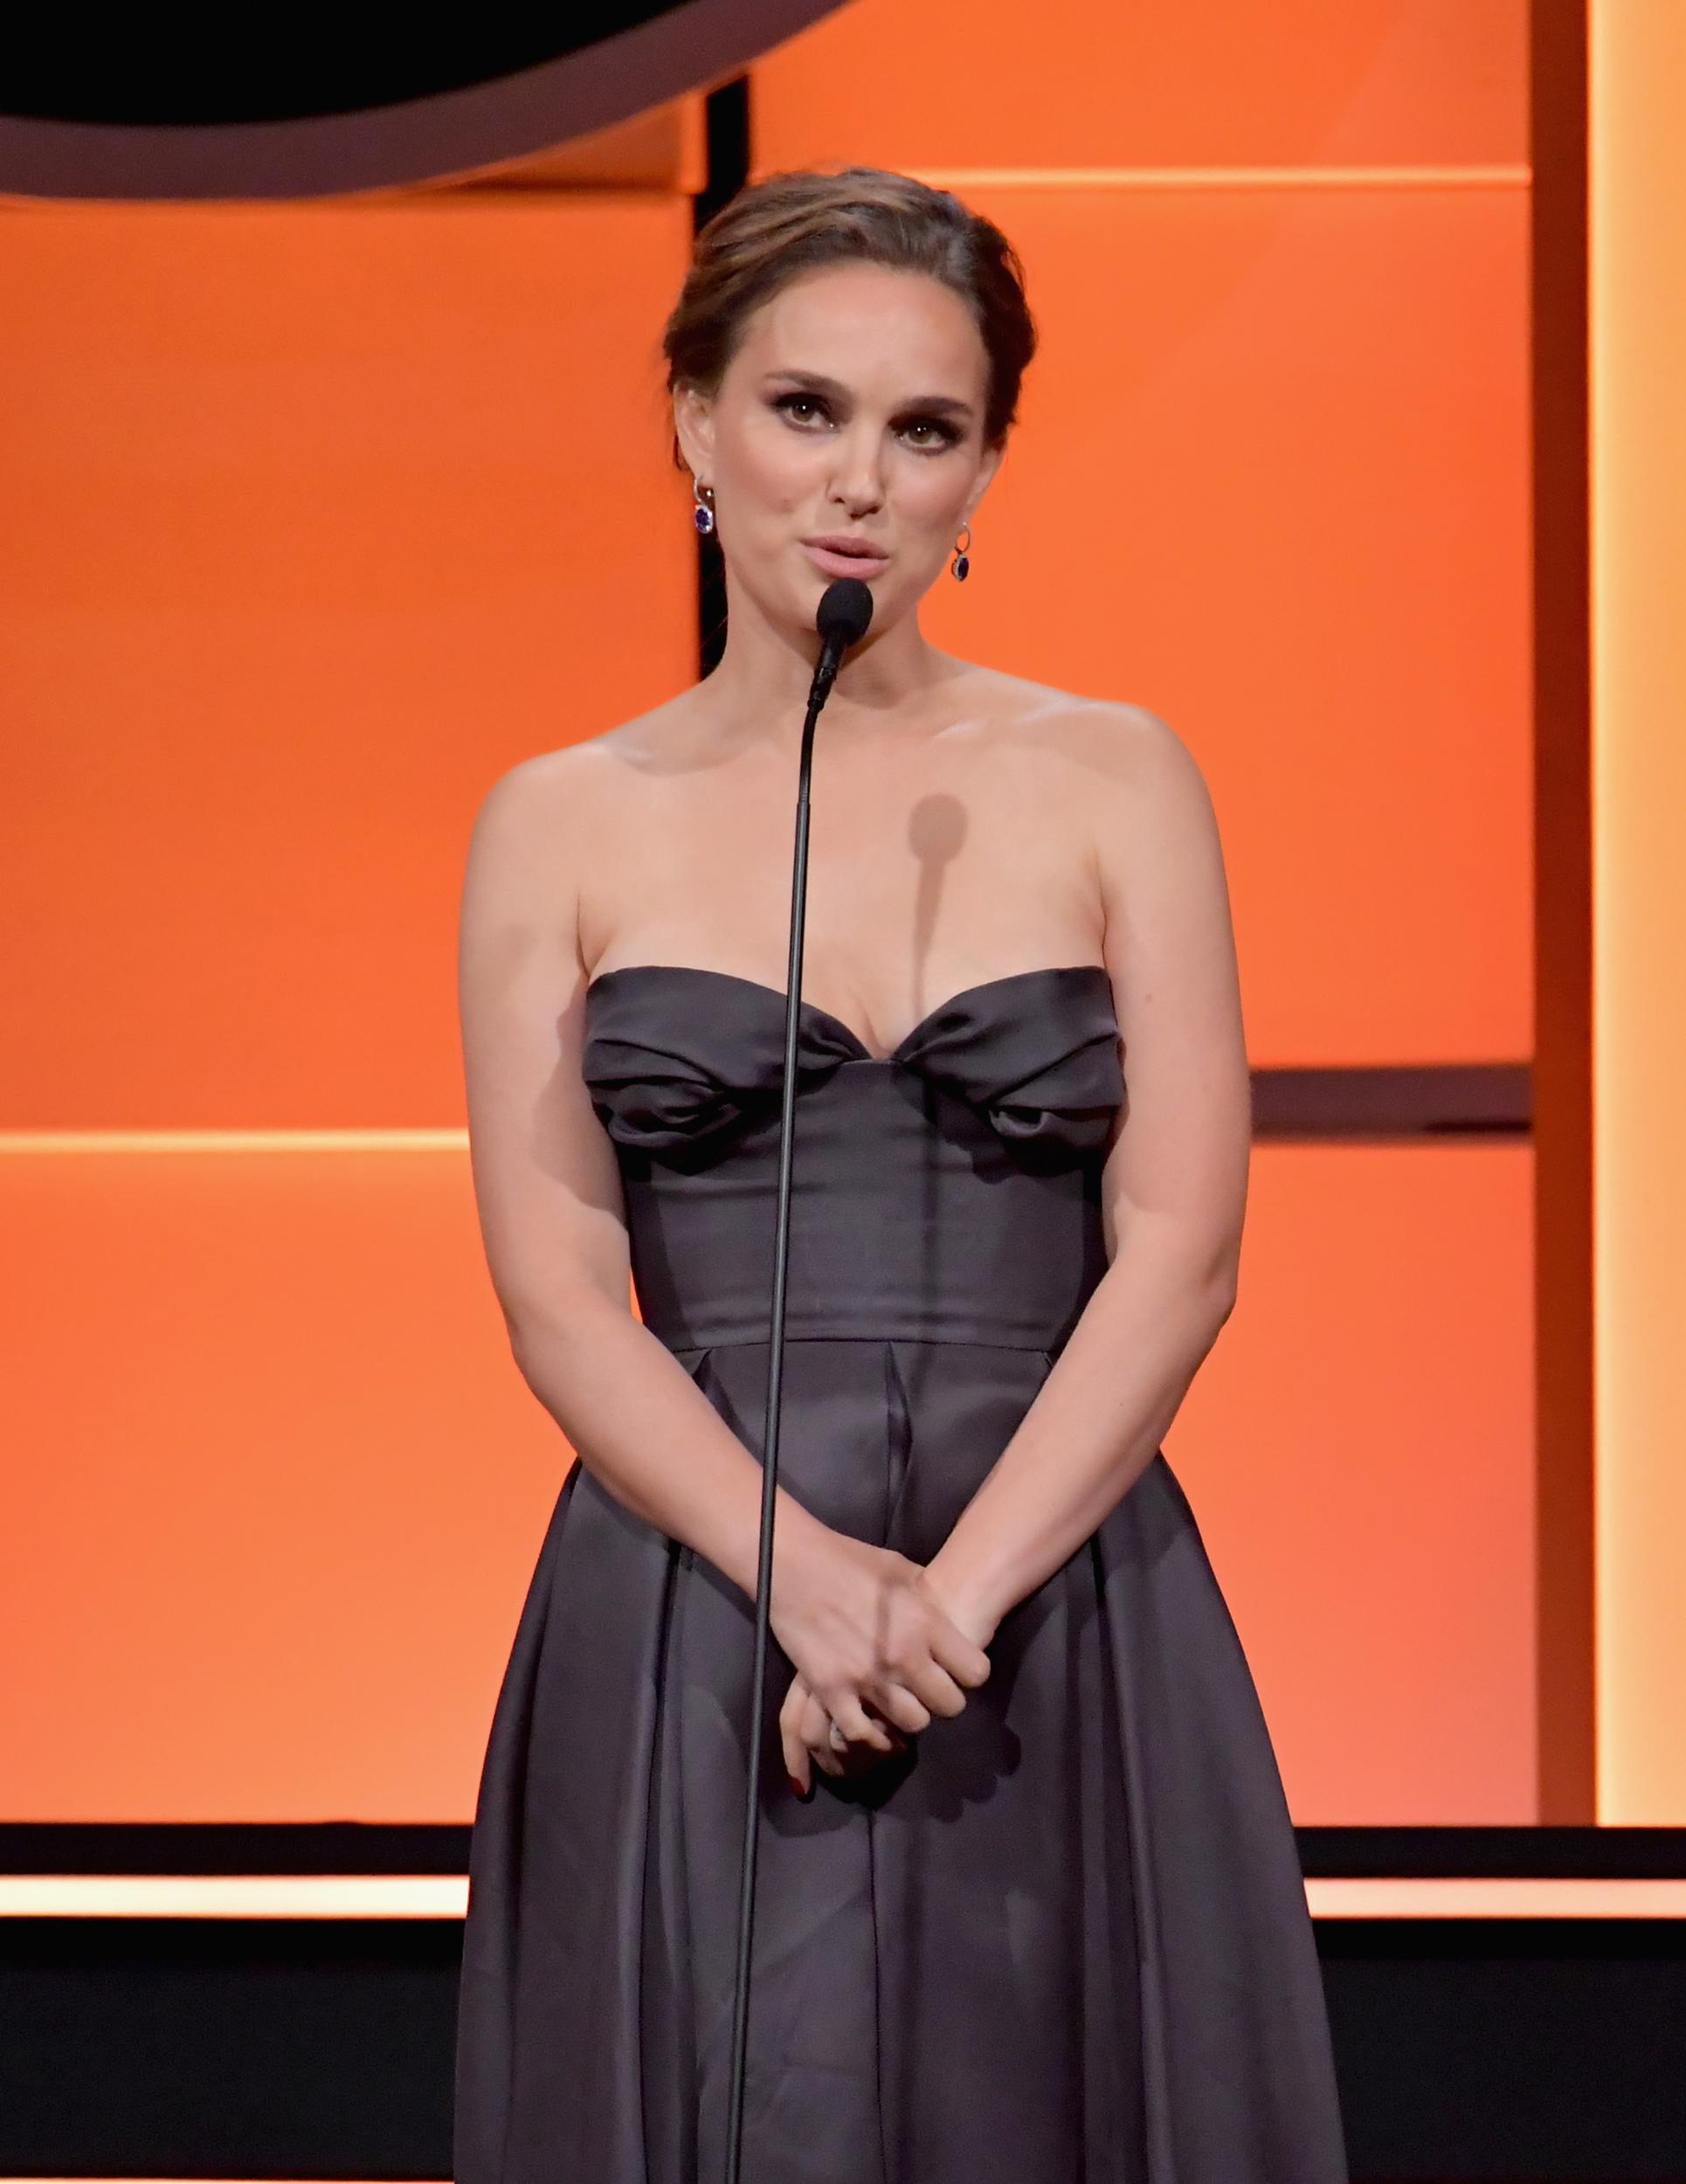 BEVERLY HILLS, CA - NOVEMBER 10:  Natalie Portman speaks onstage during the 31st Annual American Cinematheque Awards Gala at The Beverly Hilton Hotel on November 10, 2017 in Beverly Hills, California.  (Photo by Lester Cohen/WireImage)